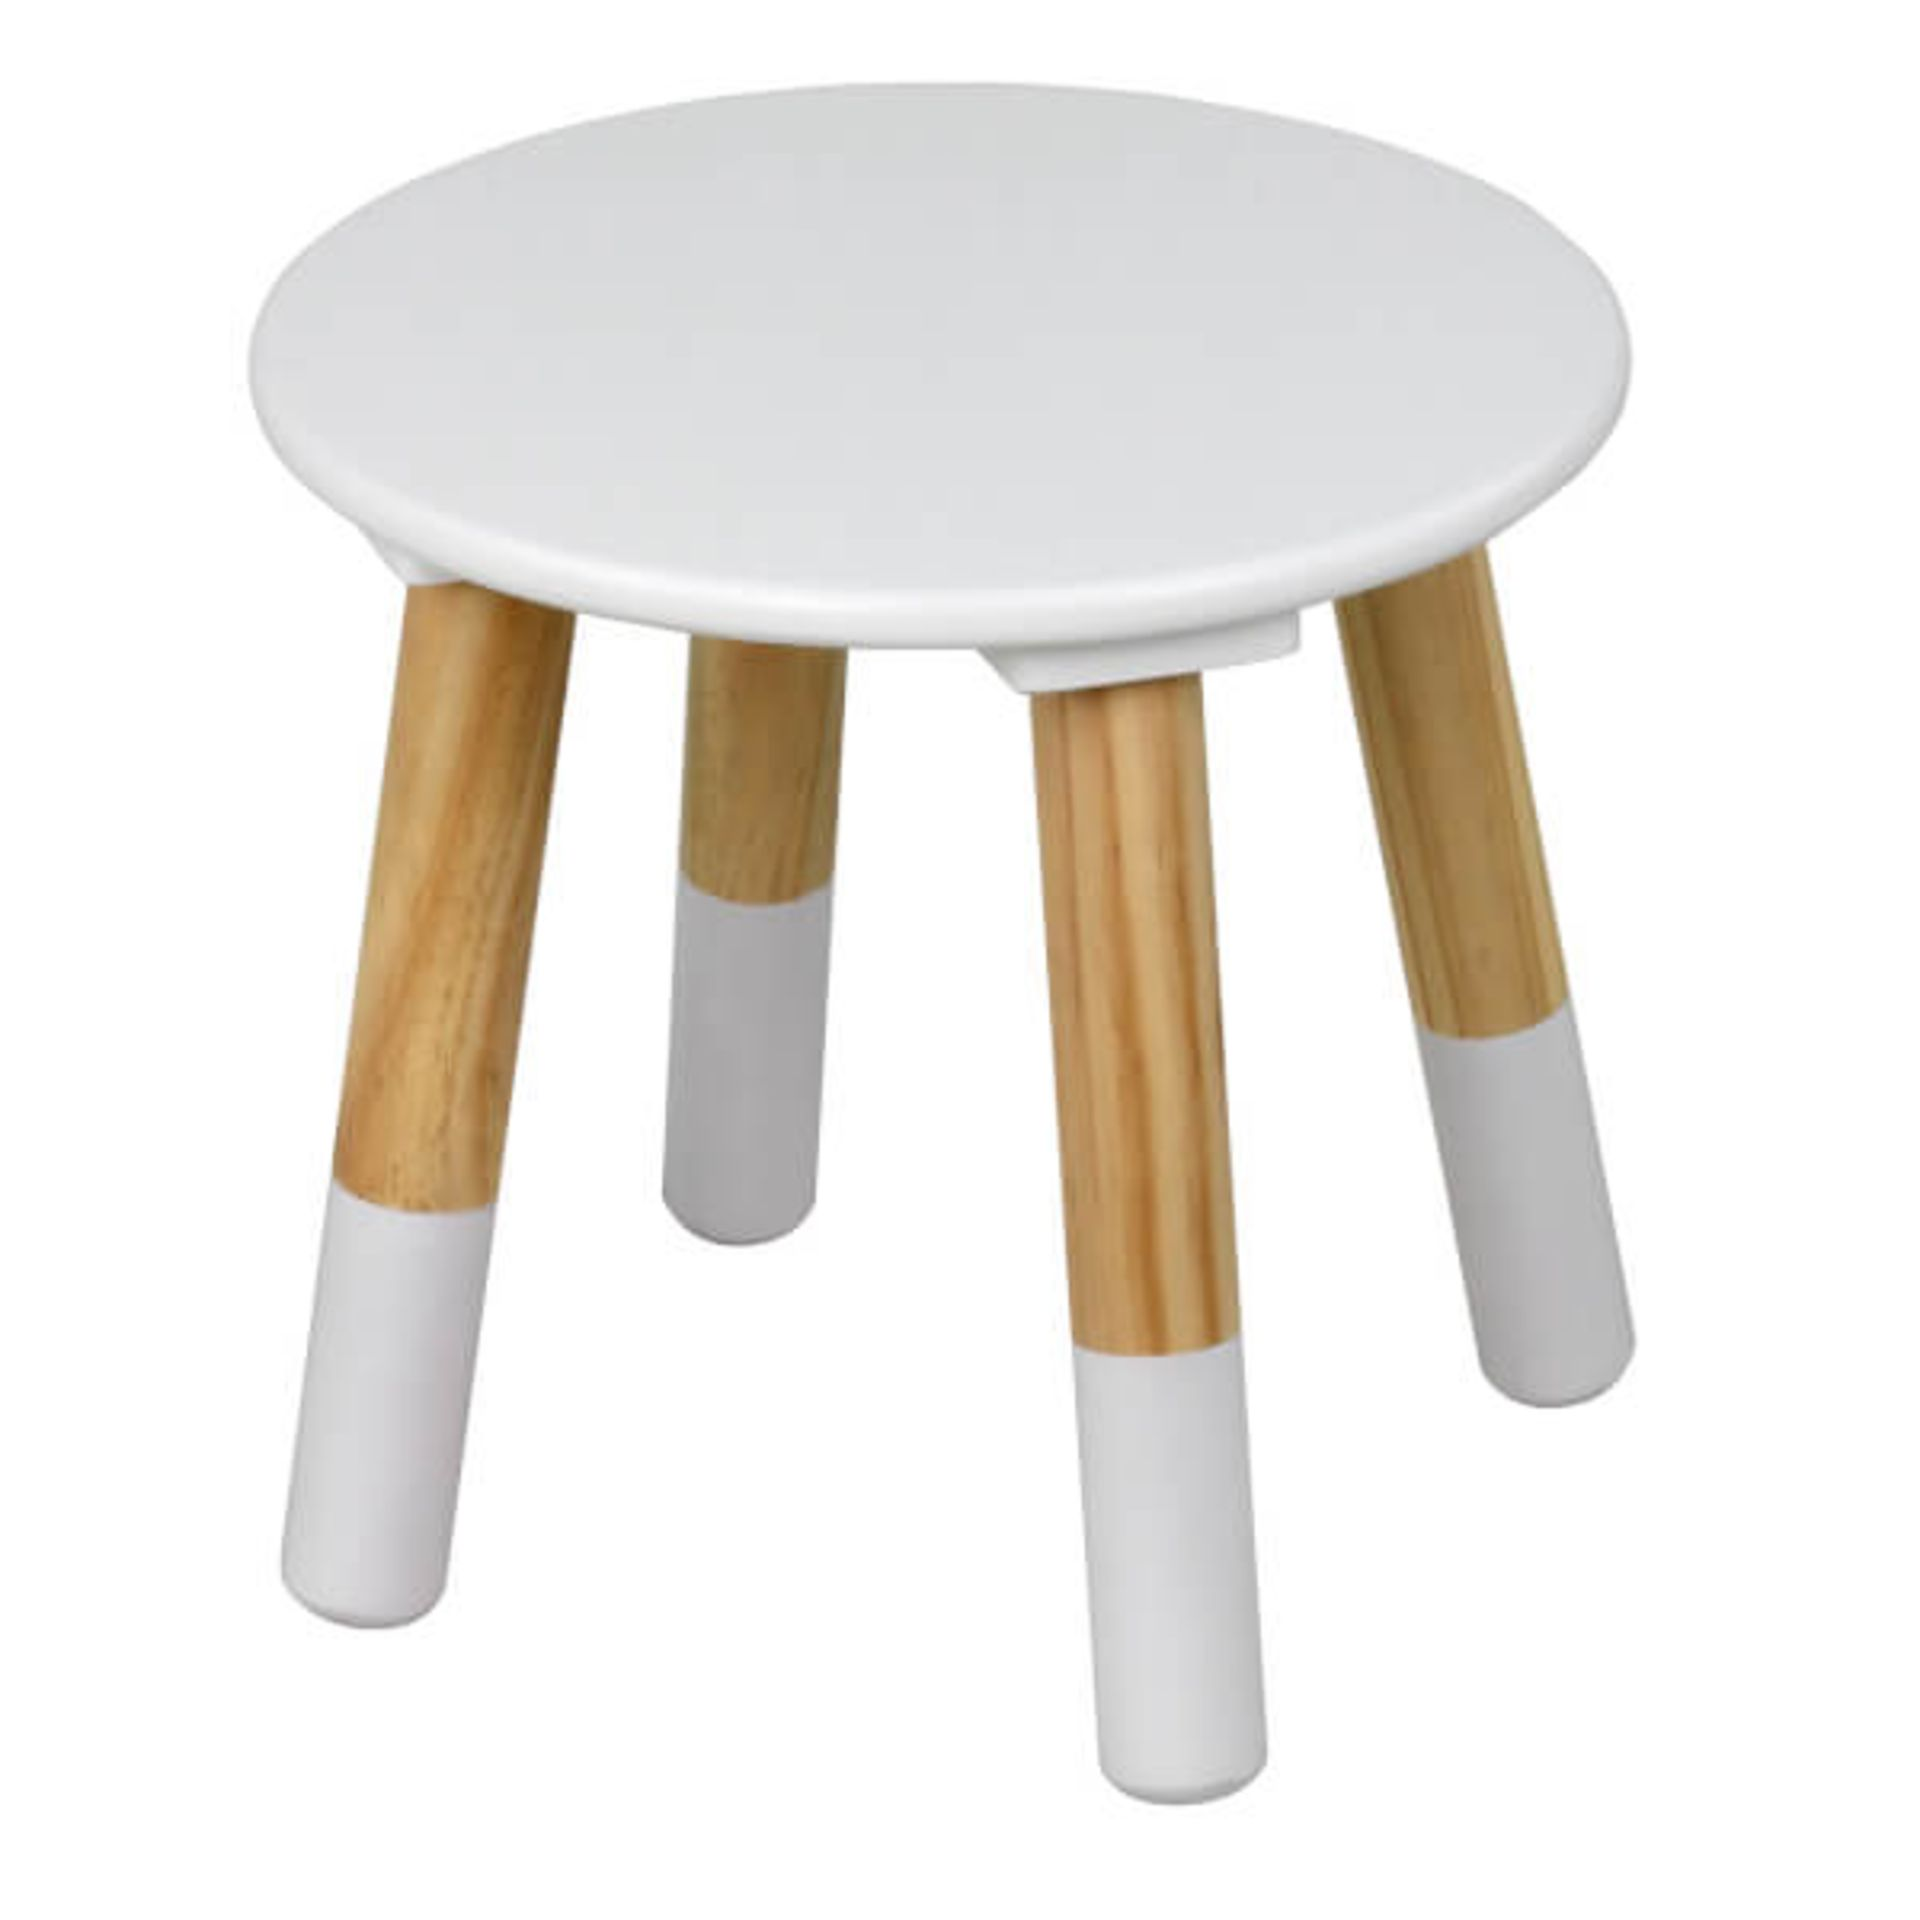 (P3) 1x Flexi Storage Kids Round Table With 2x Stools. White / Oak Finish. Table: H485x W595mm. S - Image 2 of 3